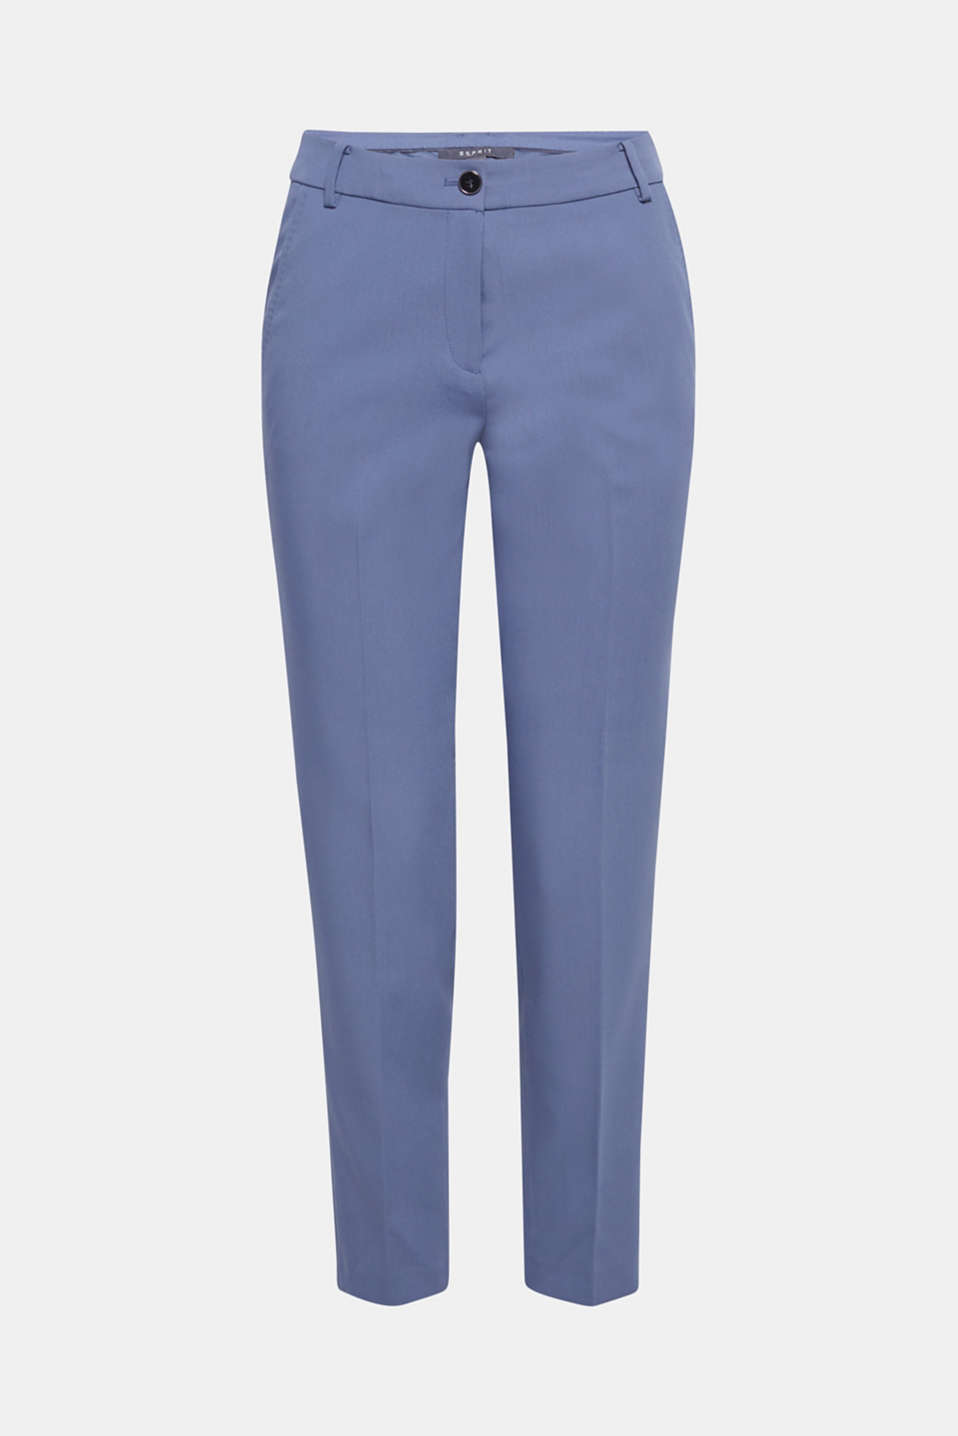 STITCHING mix + match stretch trousers with decorative stitching, GREY BLUE 2, detail image number 7